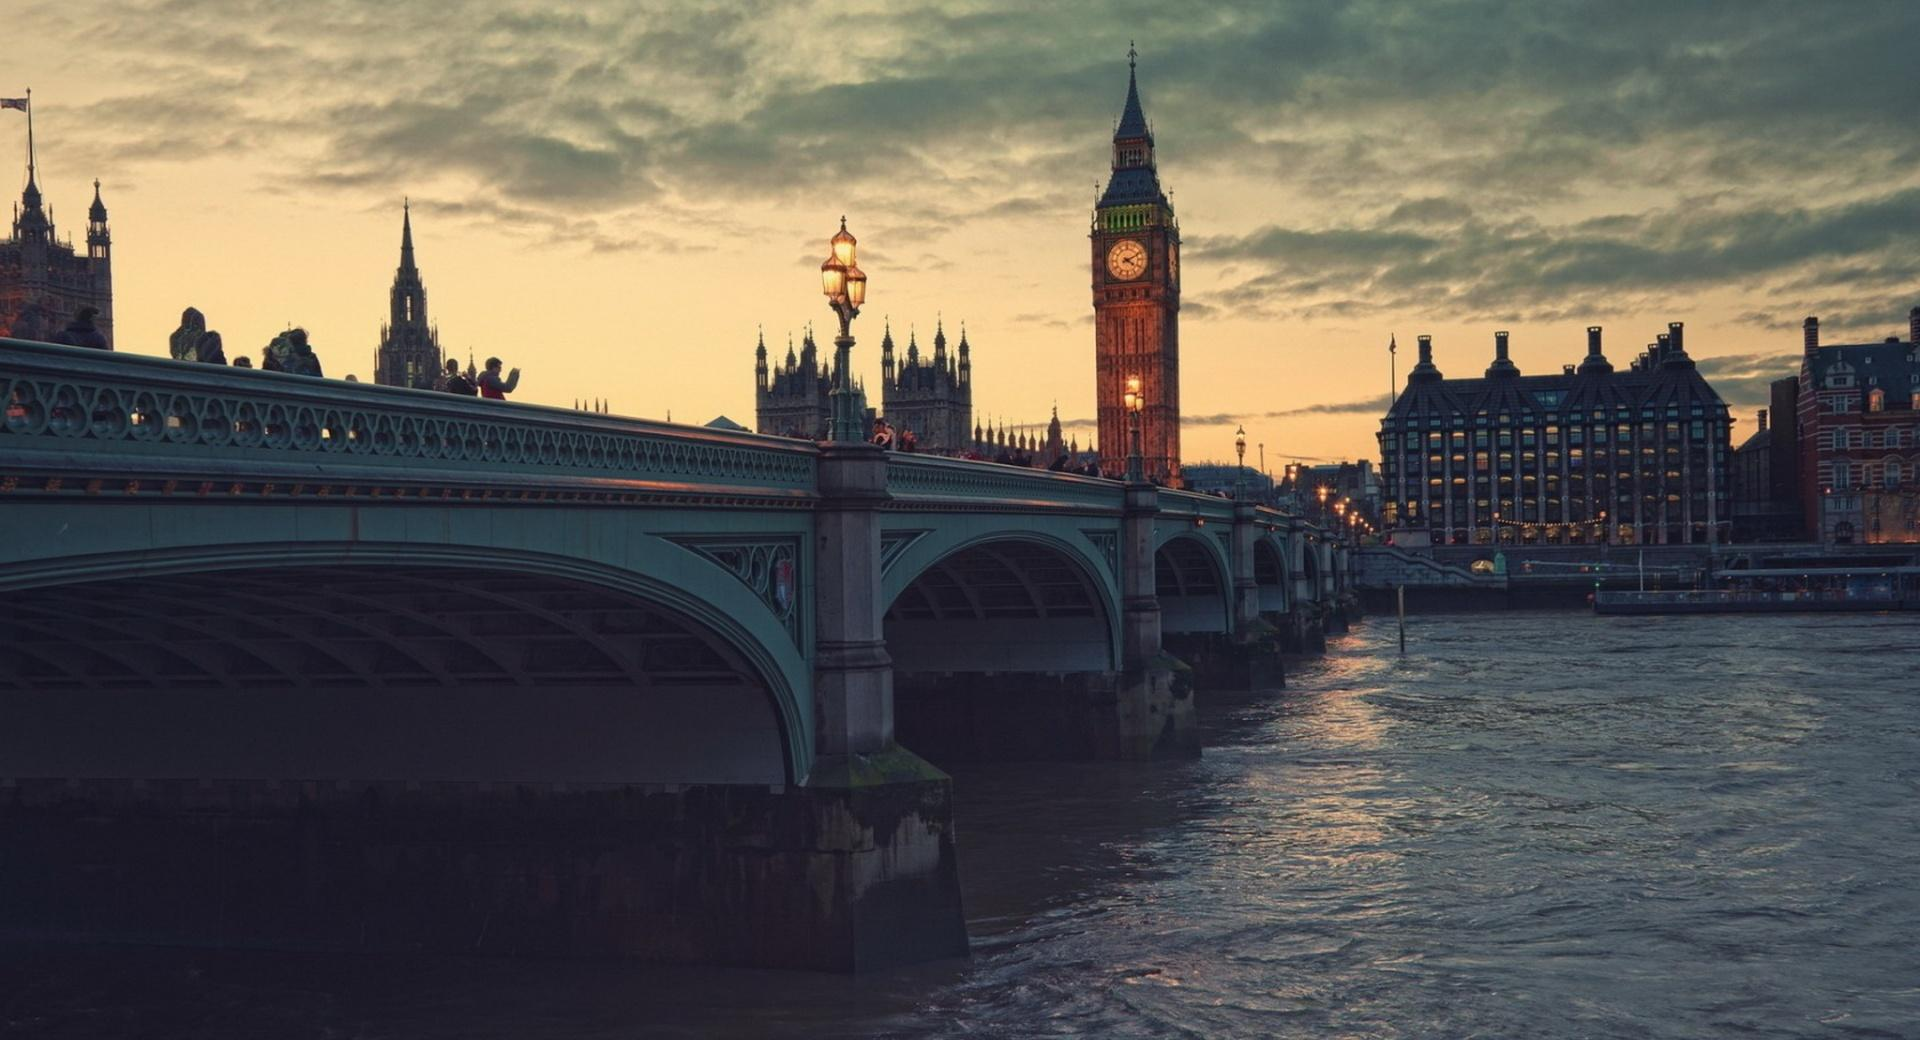 London At Dusk wallpapers HD quality